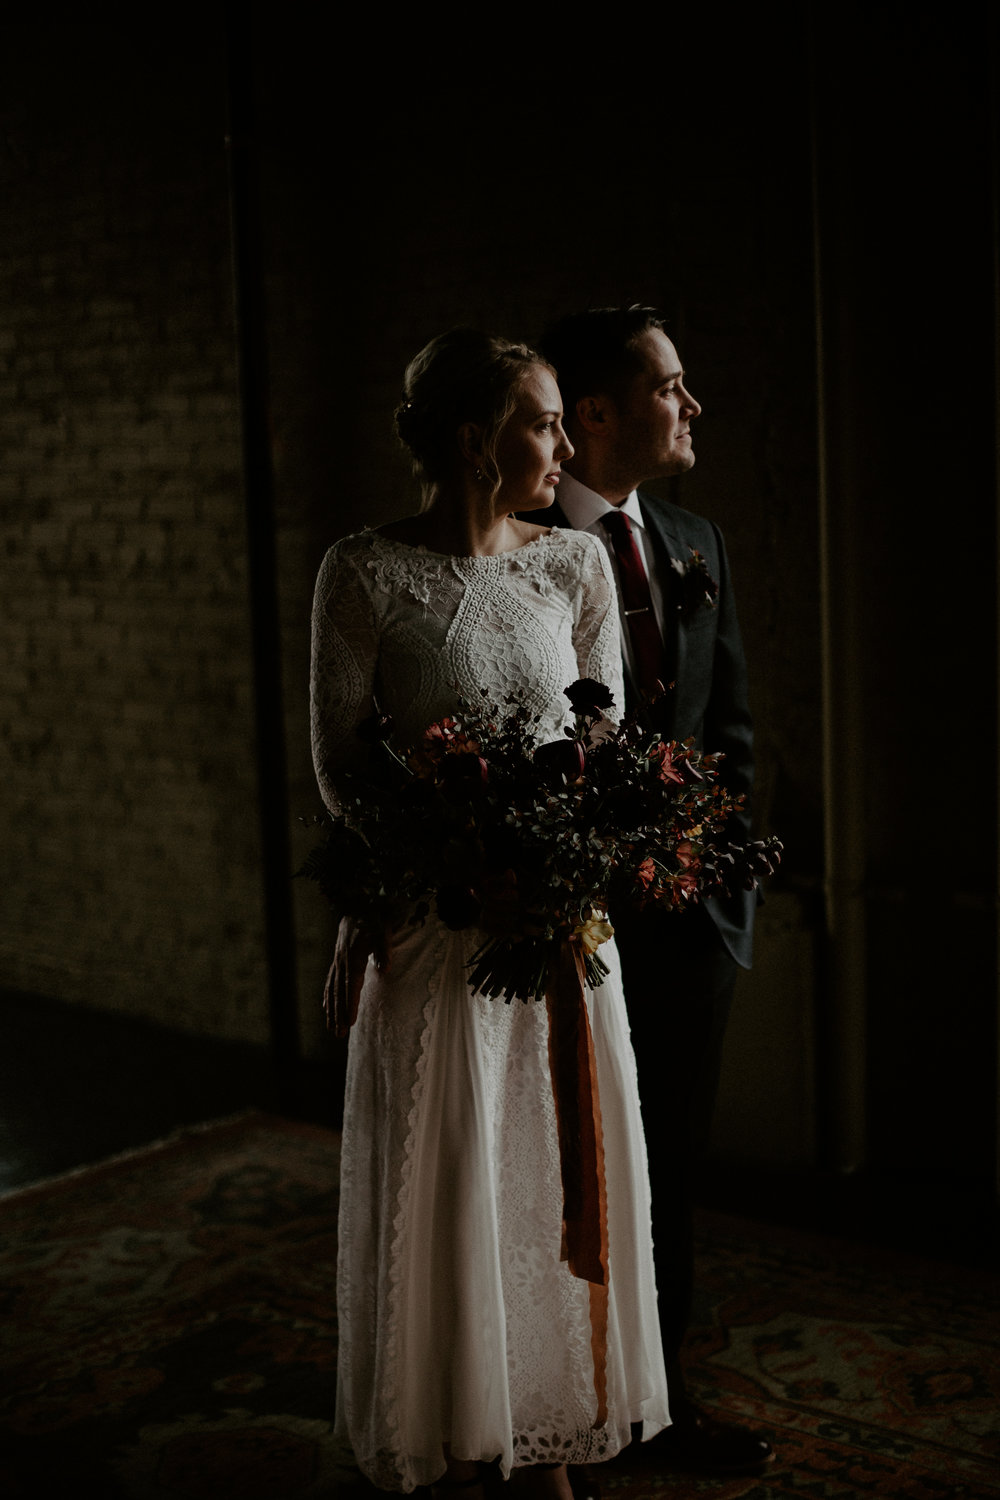 The_Steam_Plant_Dayton_Wedding-EDIT-147.jpg